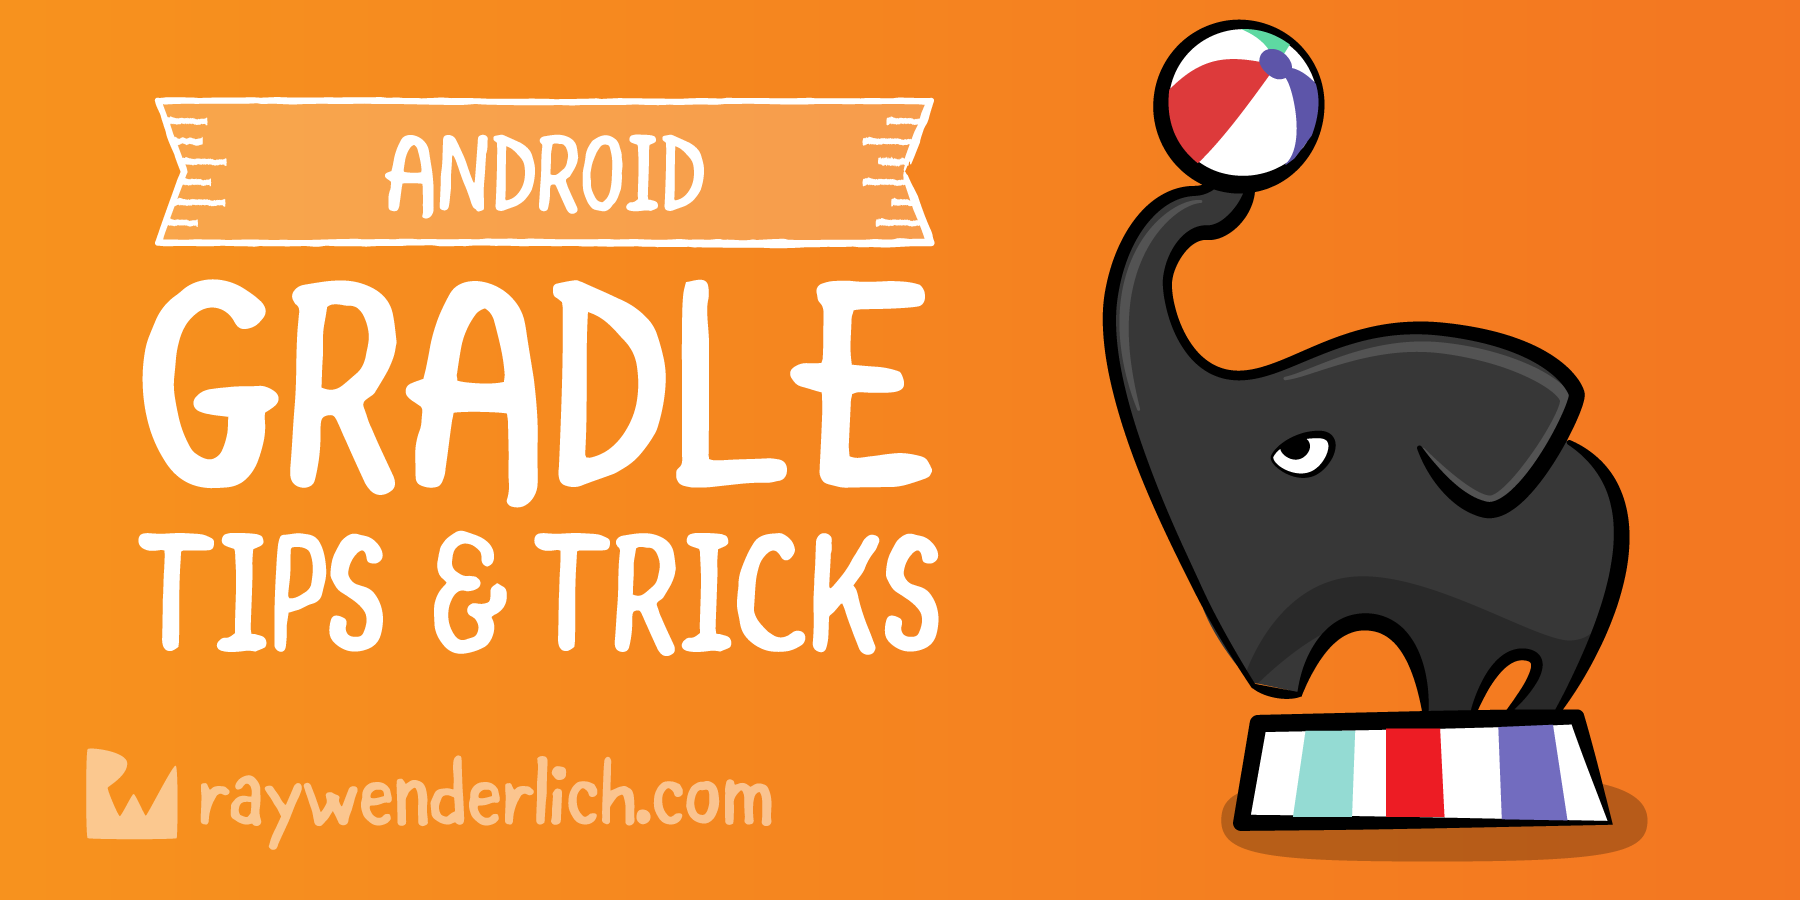 Gradle Tips and Tricks for Android | raywenderlich com